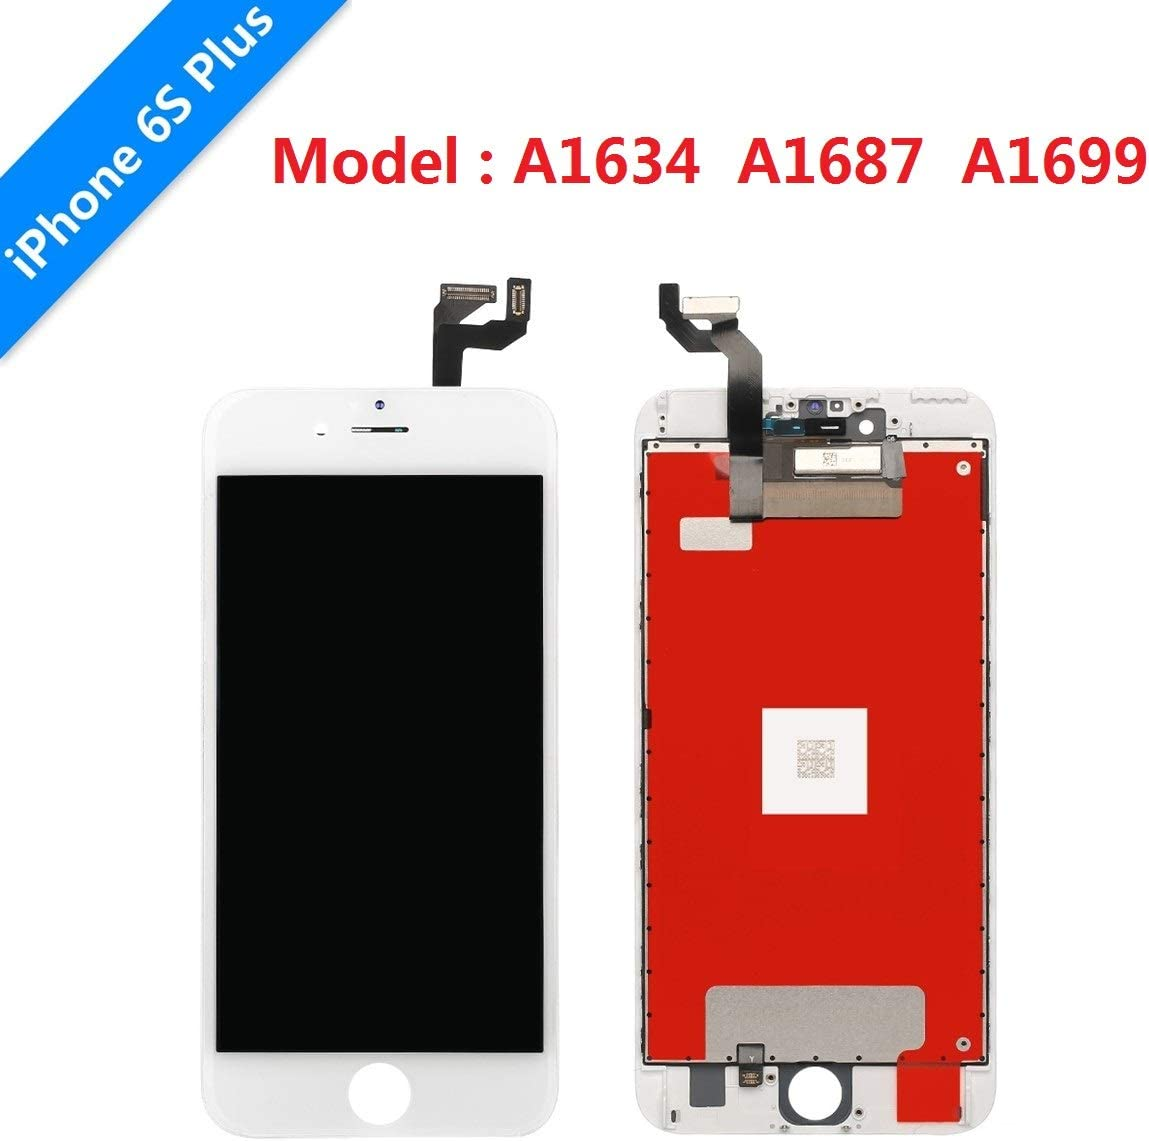 USlansis White iPhone 7 Plus Screen Replacement 3D Touch Screen Glass Digitizer Frame Assembly Set with Tempered Glass Screen Protector Instruction Repair Tools